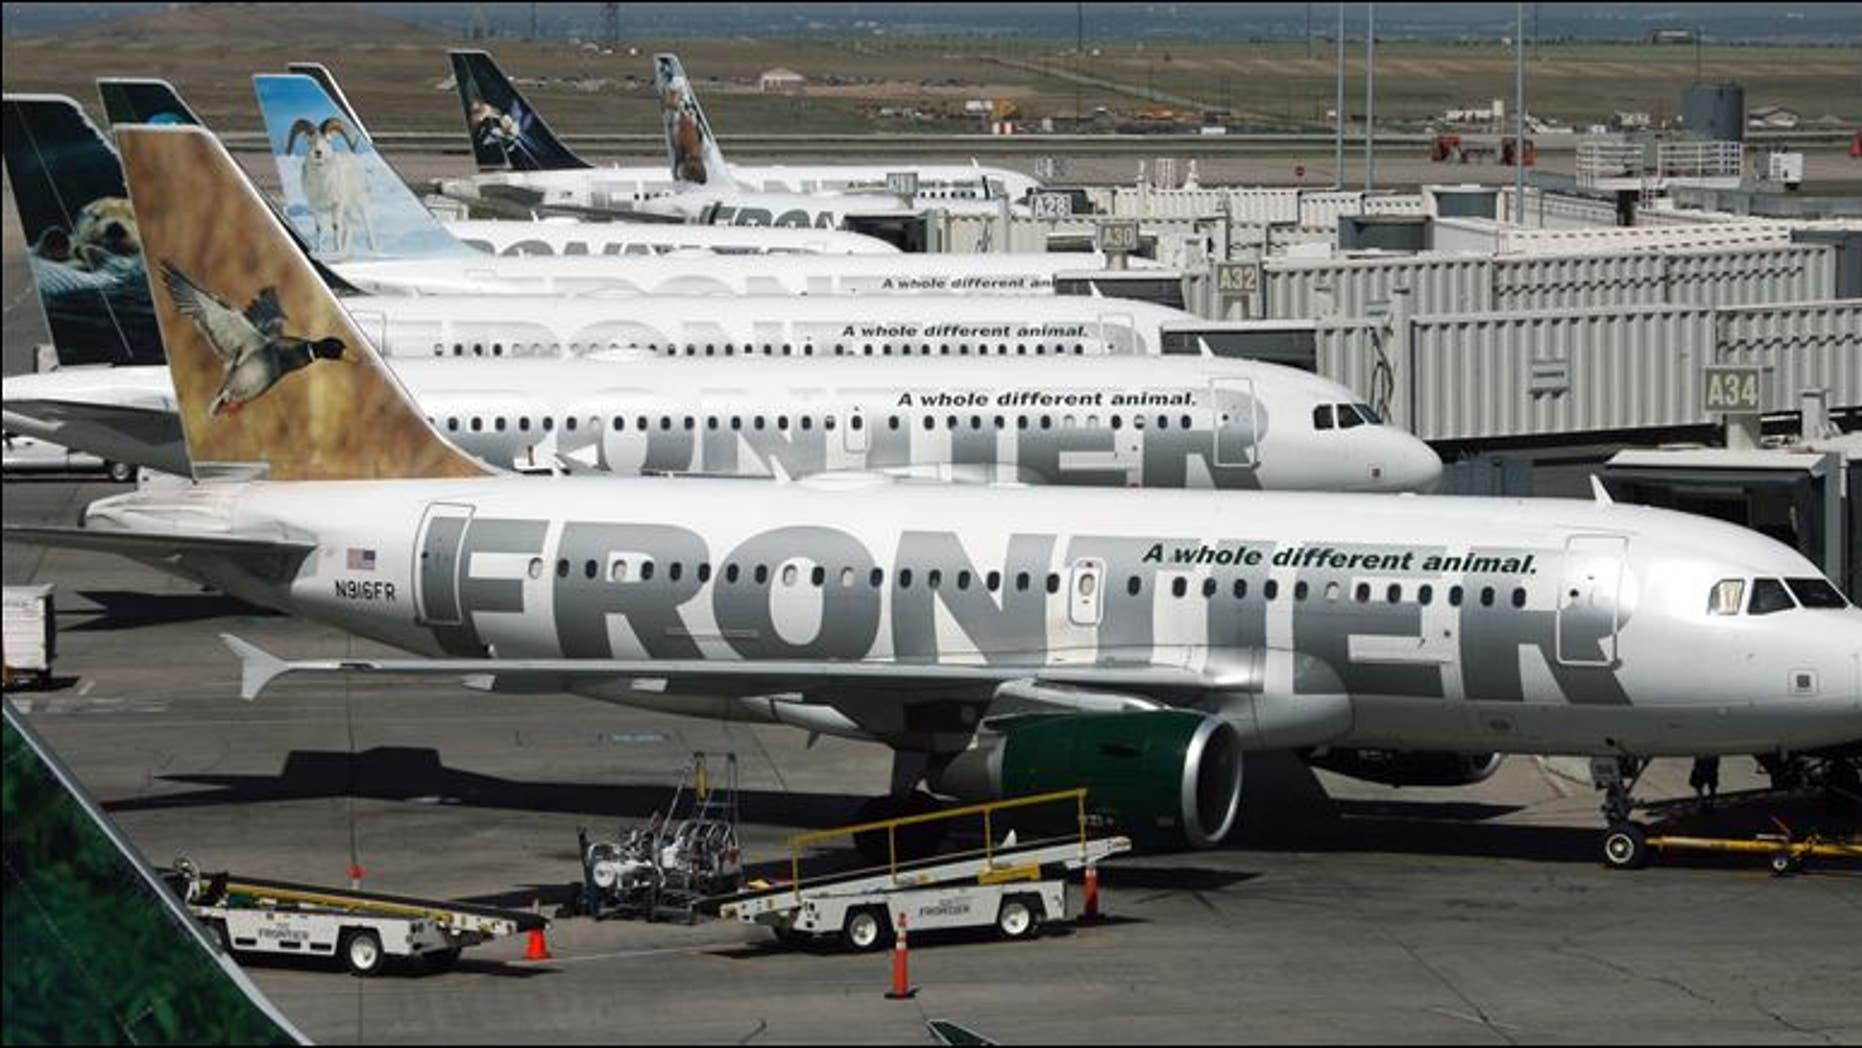 The low-cost carrier is based in Denver, Colo.